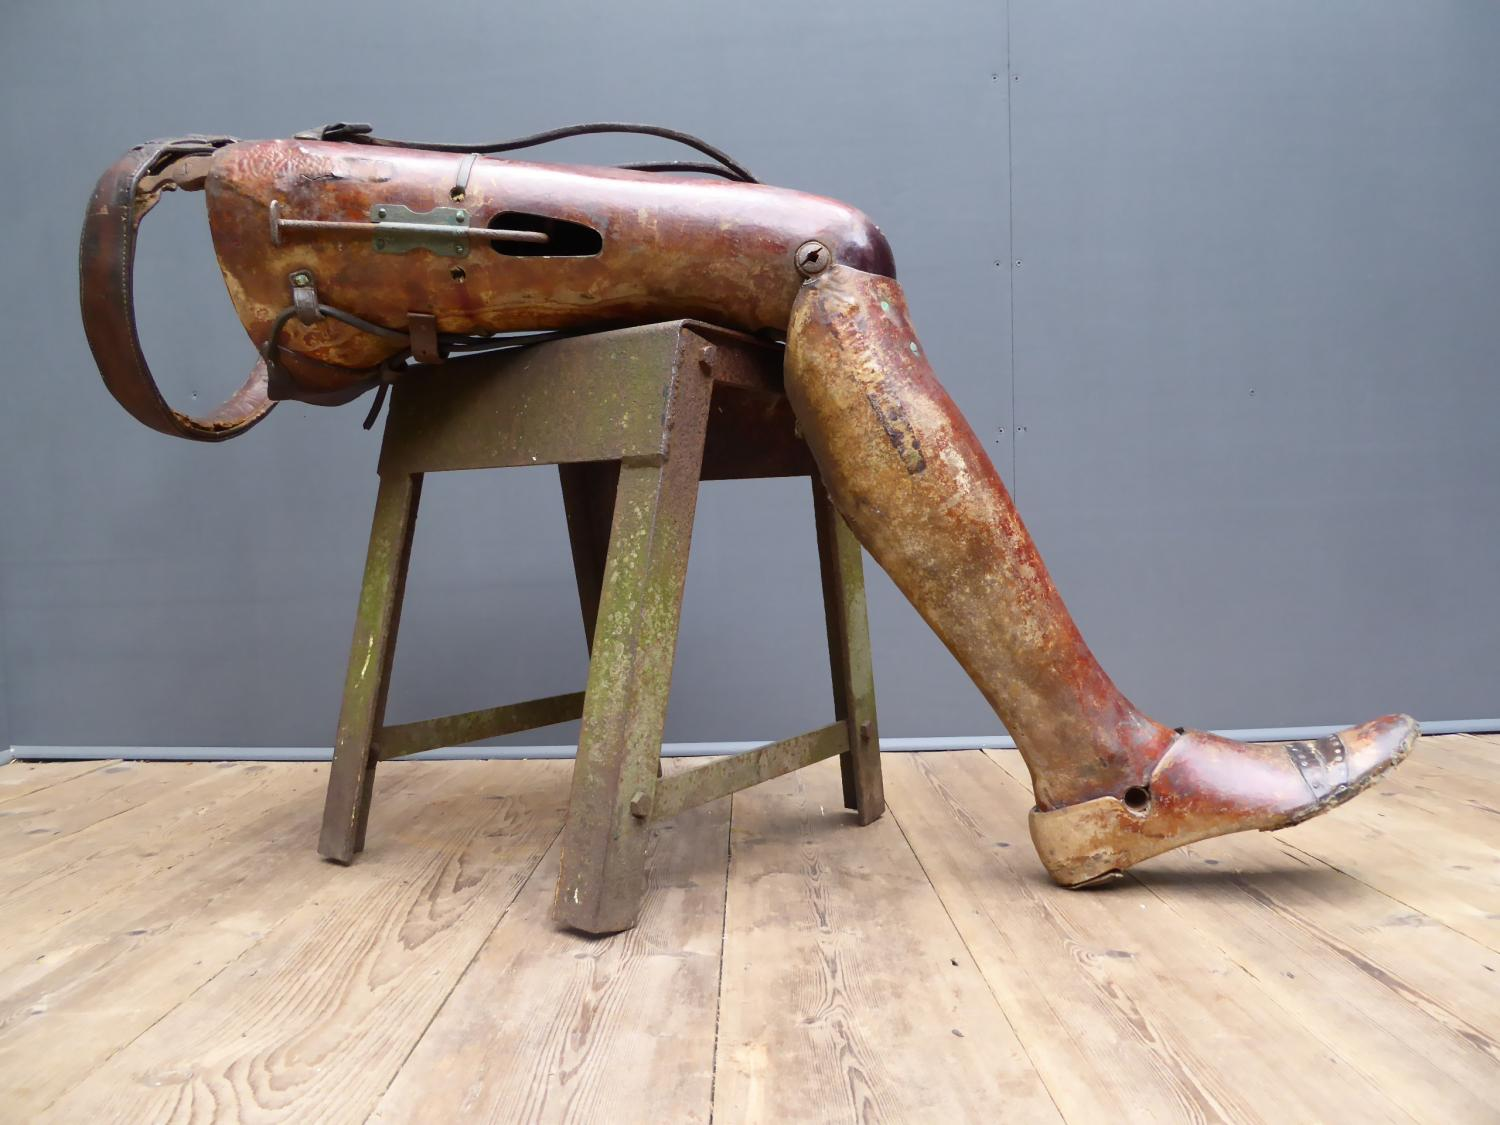 Early Prosthetic Leg